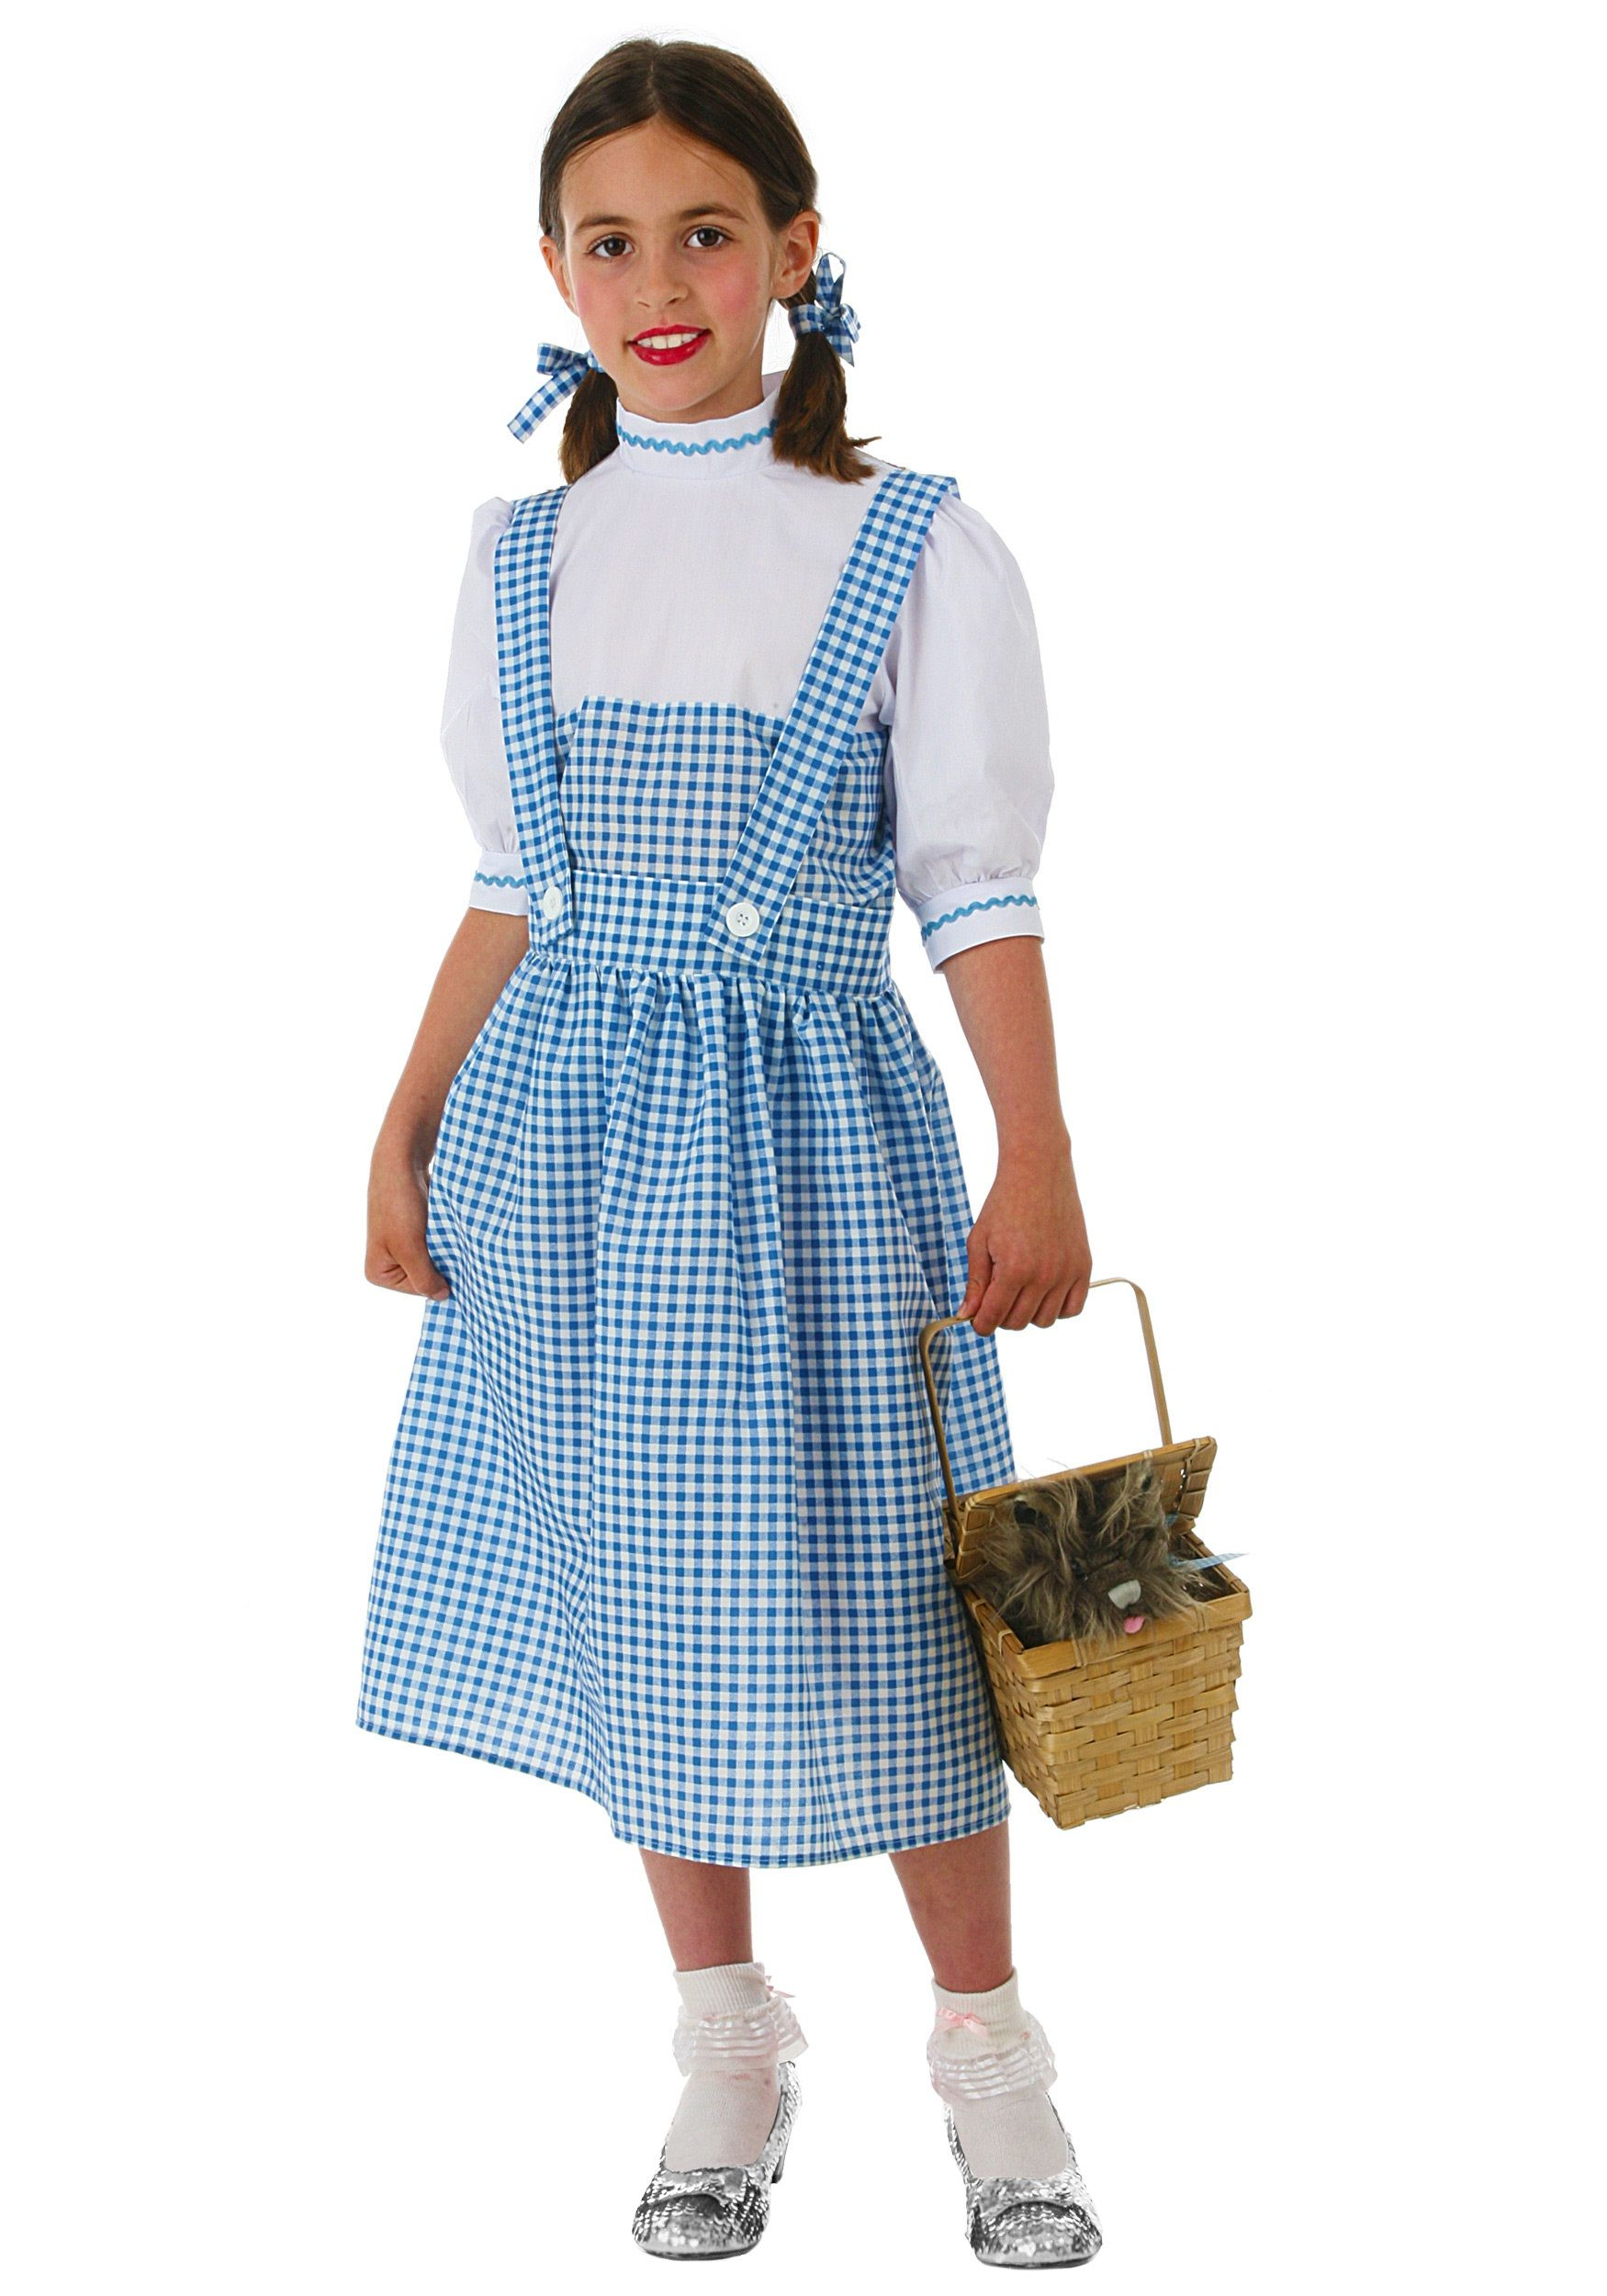 Child Kansas Girl Dress Costume | Best Costumes, Halloween ...